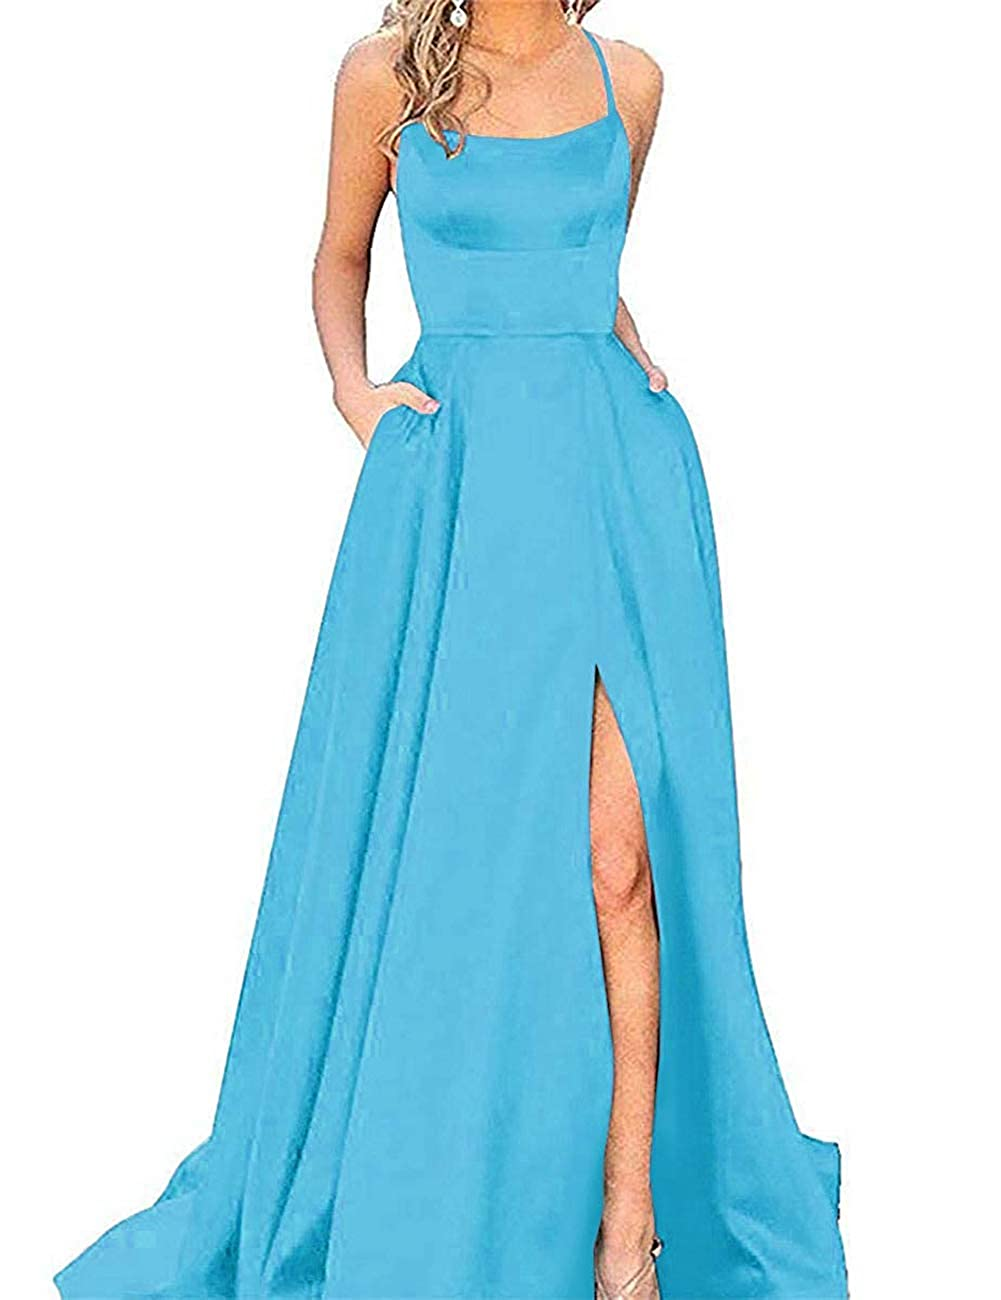 bluee APXPF Women's Spaghetti Straps Satin Prom Dress Long Split ALine Formal Party Gown with Pockets